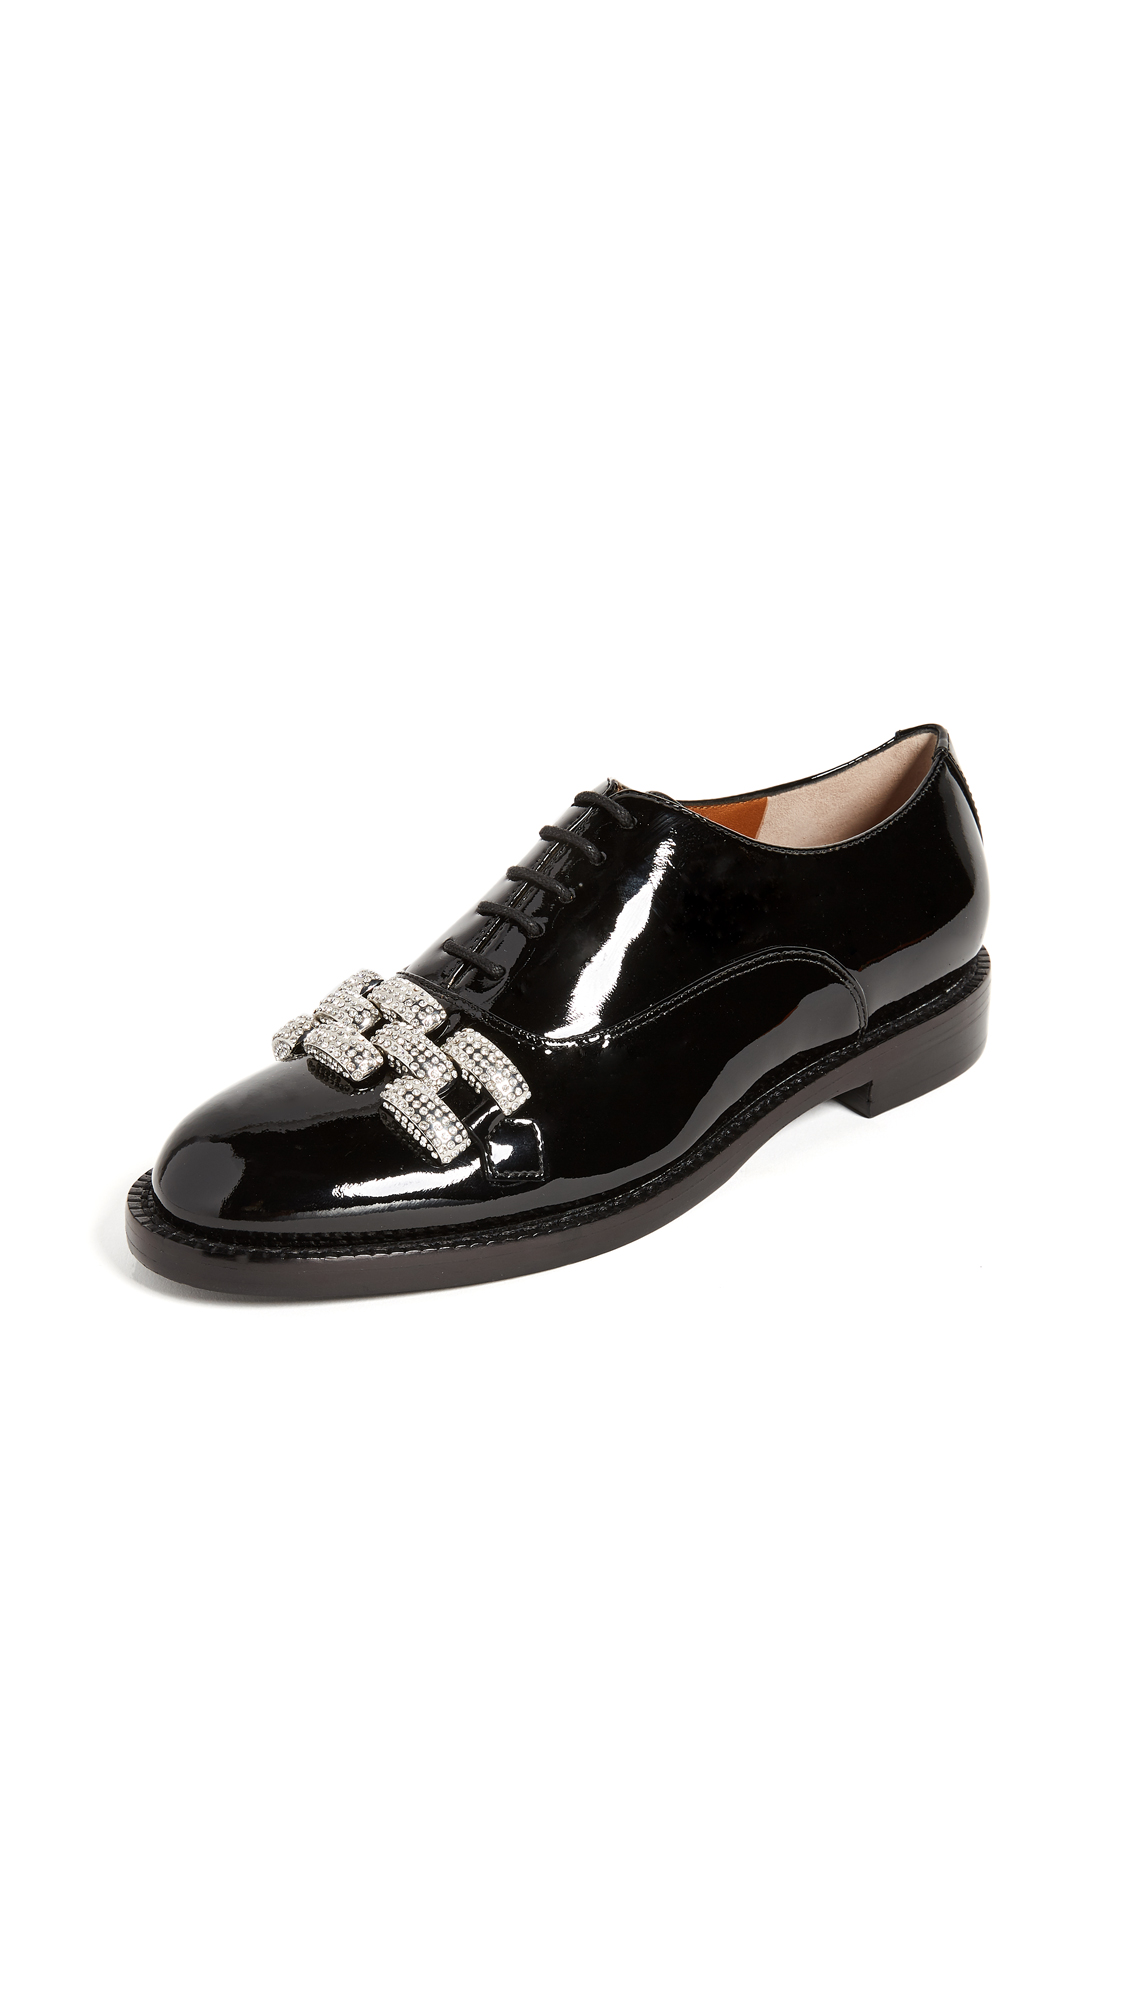 Marc Jacobs Dara Chain Link Oxfords - Black